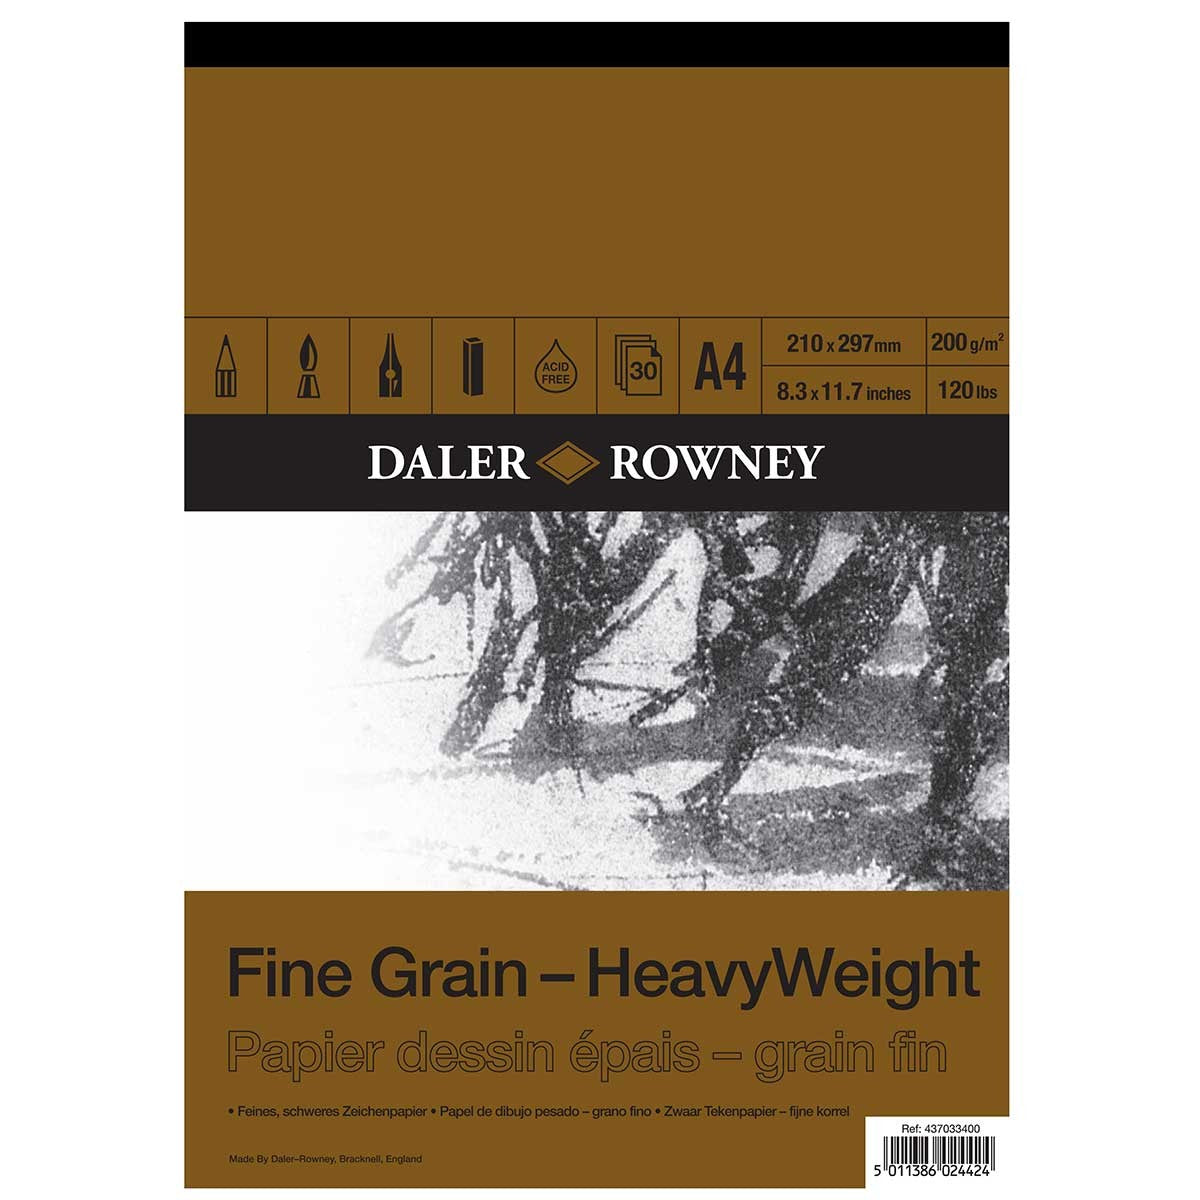 Daler Rowney Fine Grain Heavyweight Cartridge Pad - 200gsm